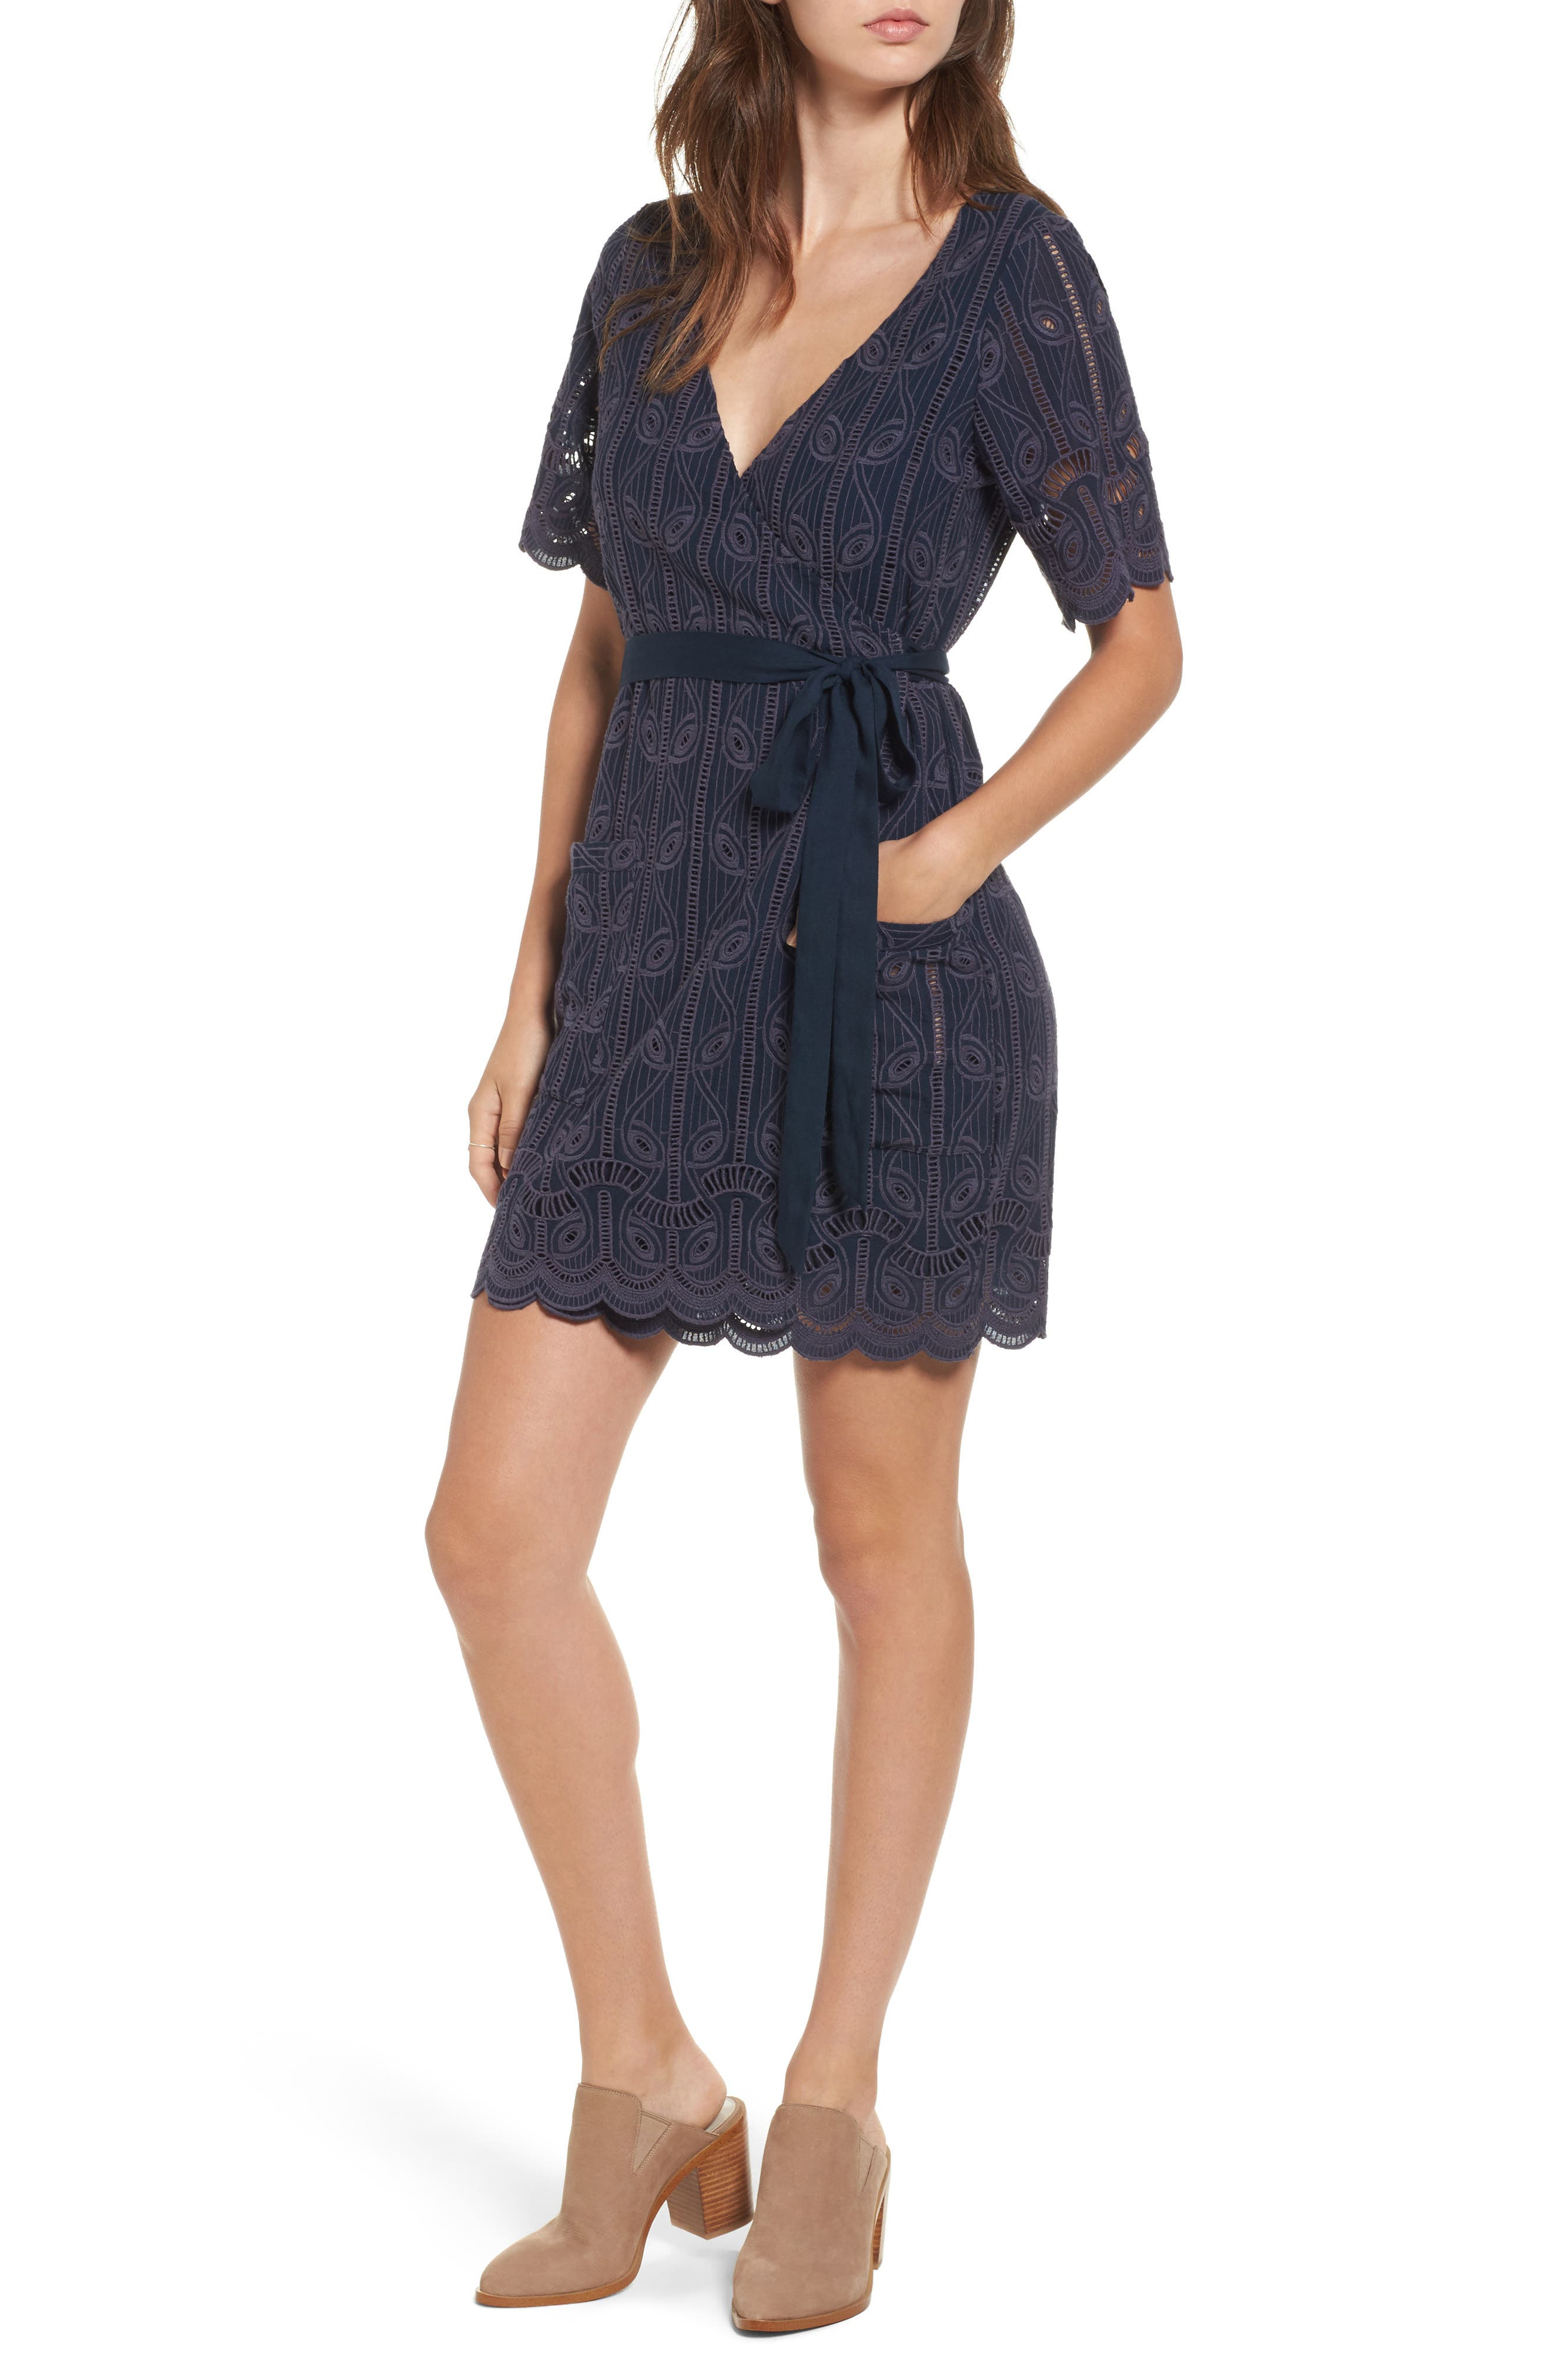 Alternate Image 1 Selected - Tularosa Rocky Cutwork Embroidery Wrap Dress